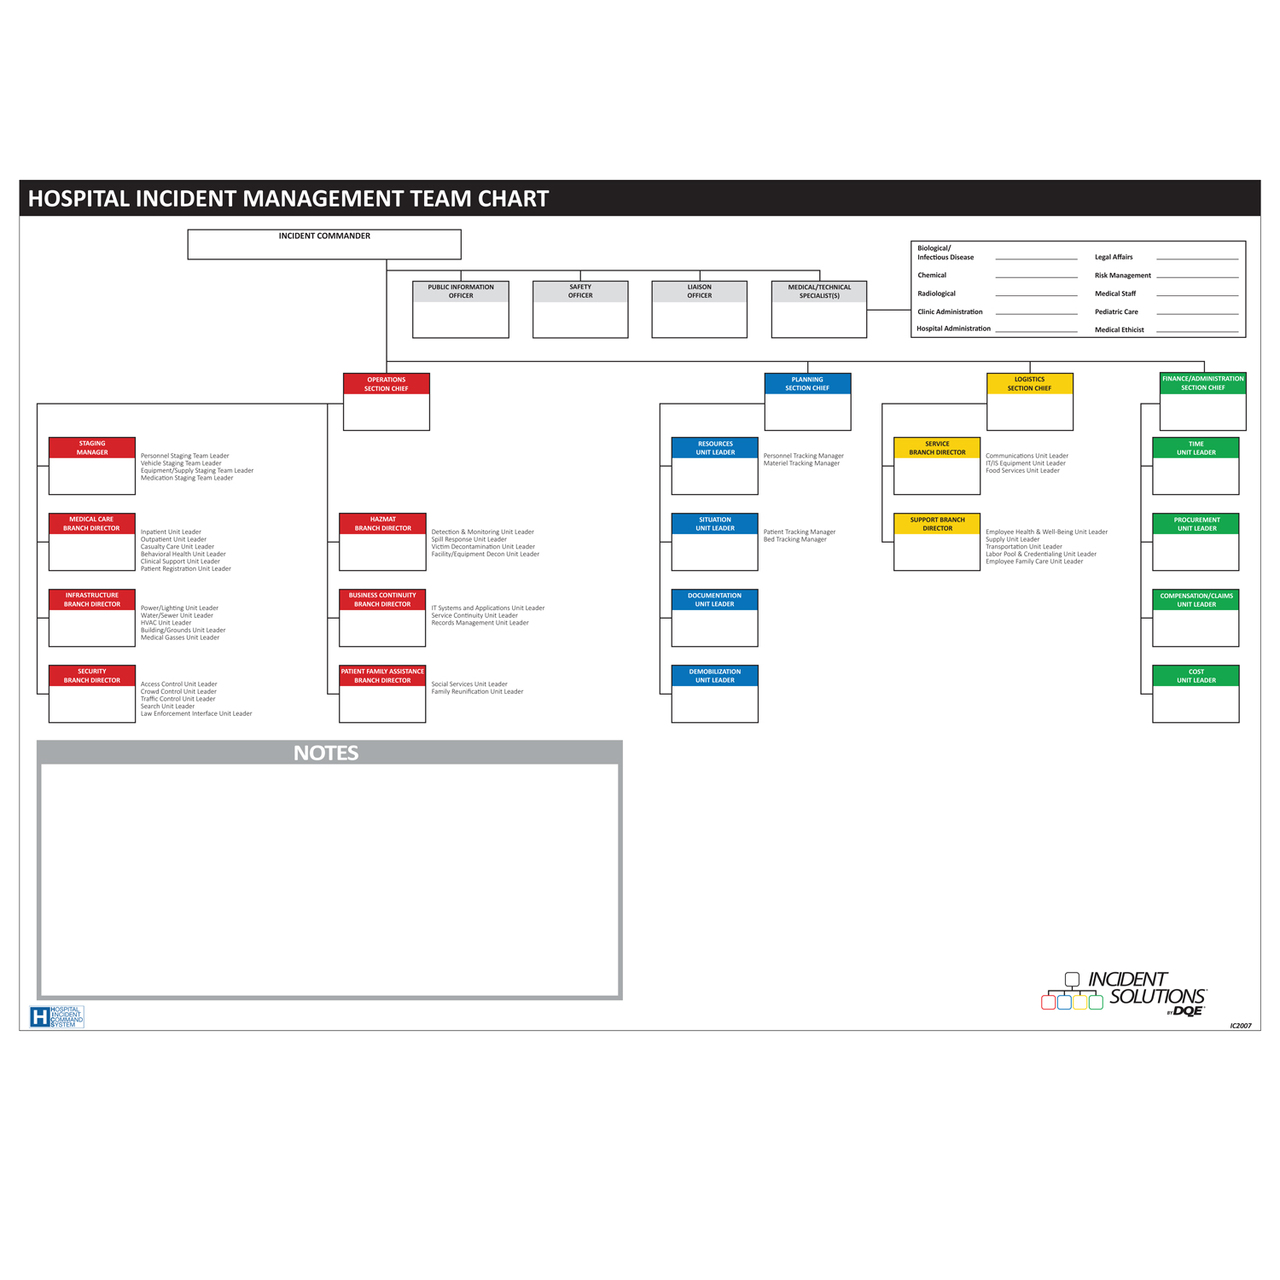 HICS 26 Position HIMT Chart - Dry Erase image